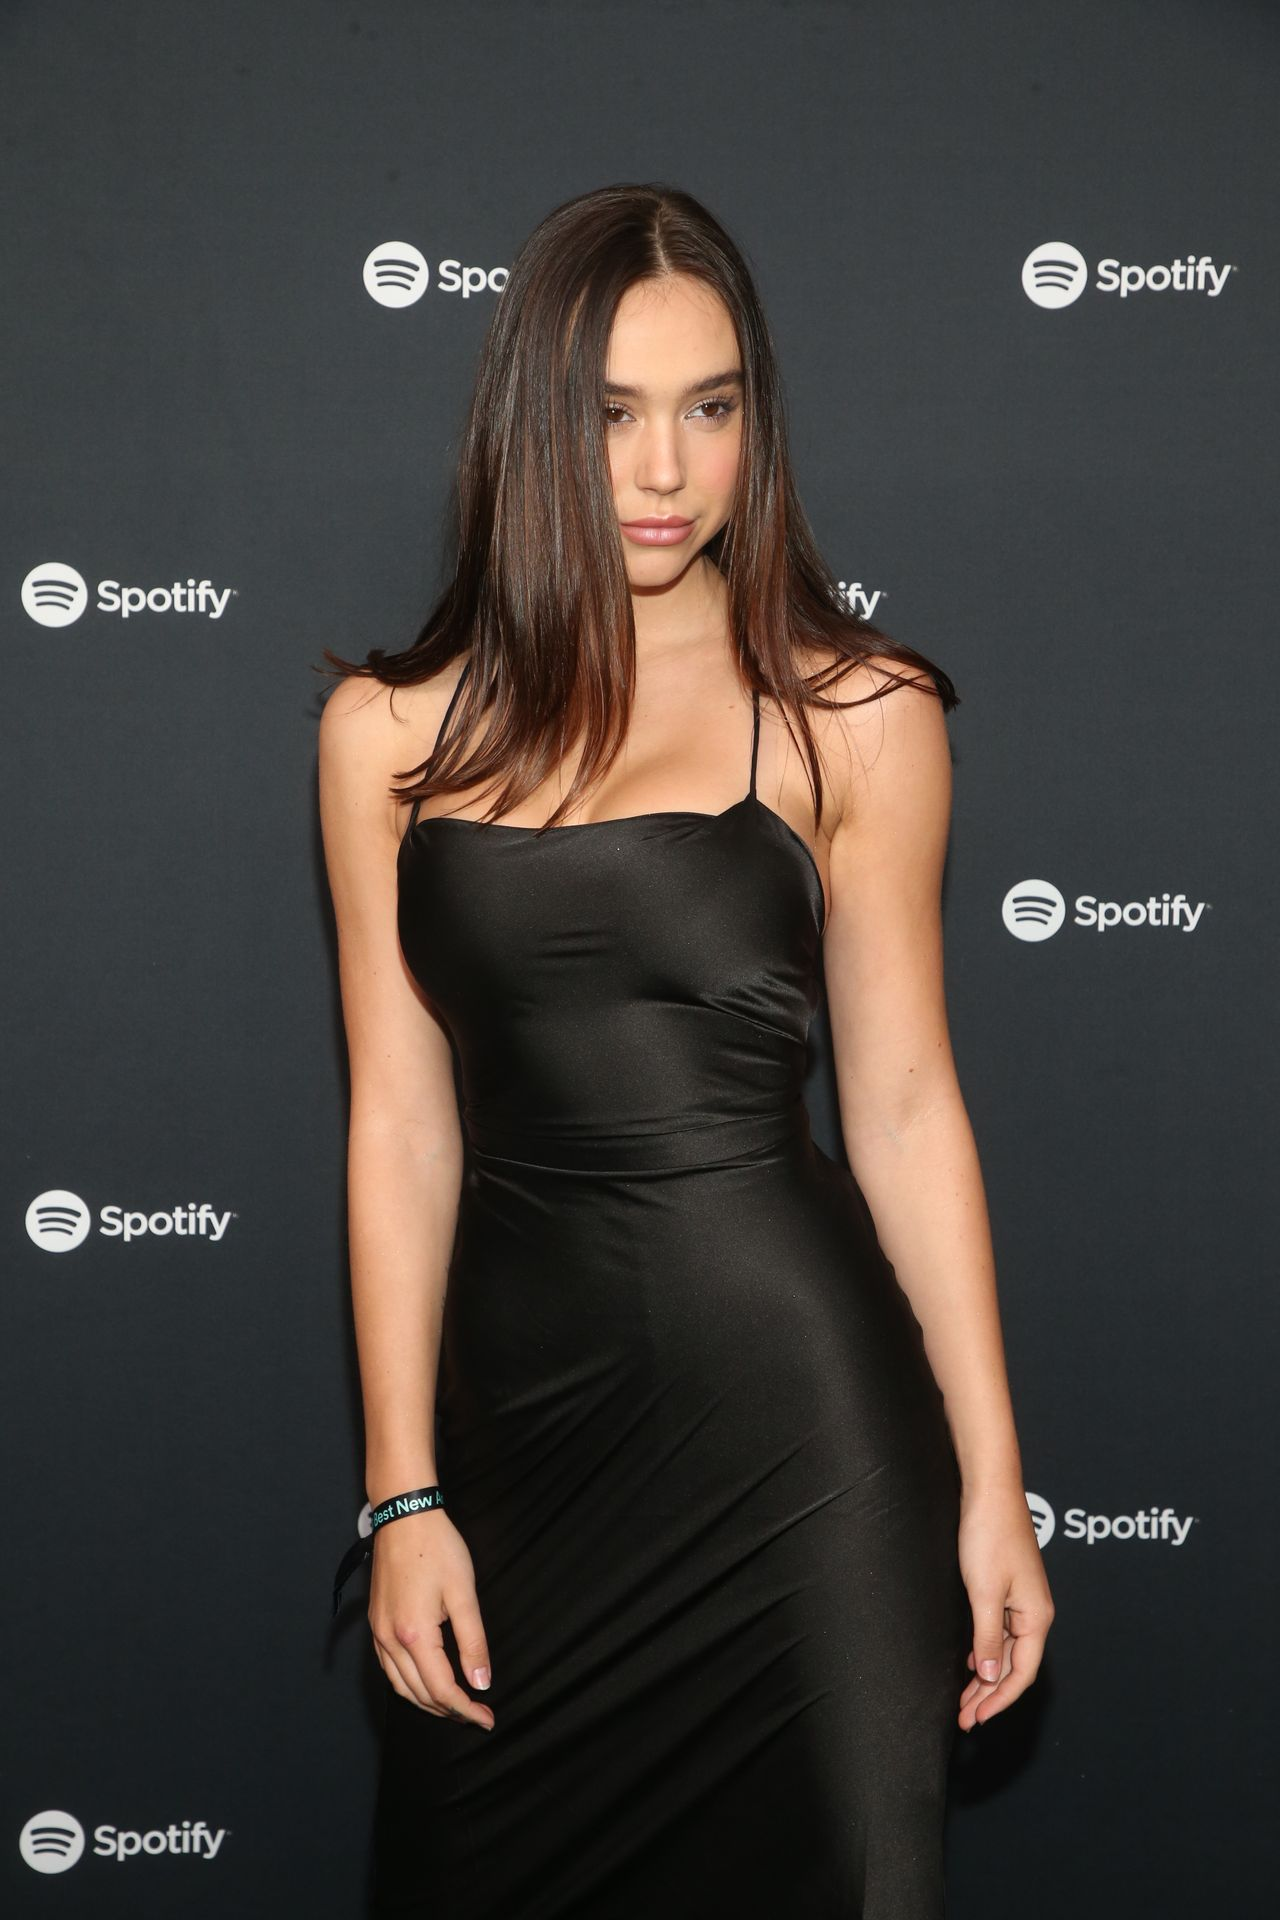 Alexis Ren Shows Off Her Tits At The Spotify Best New Artist Party 0008